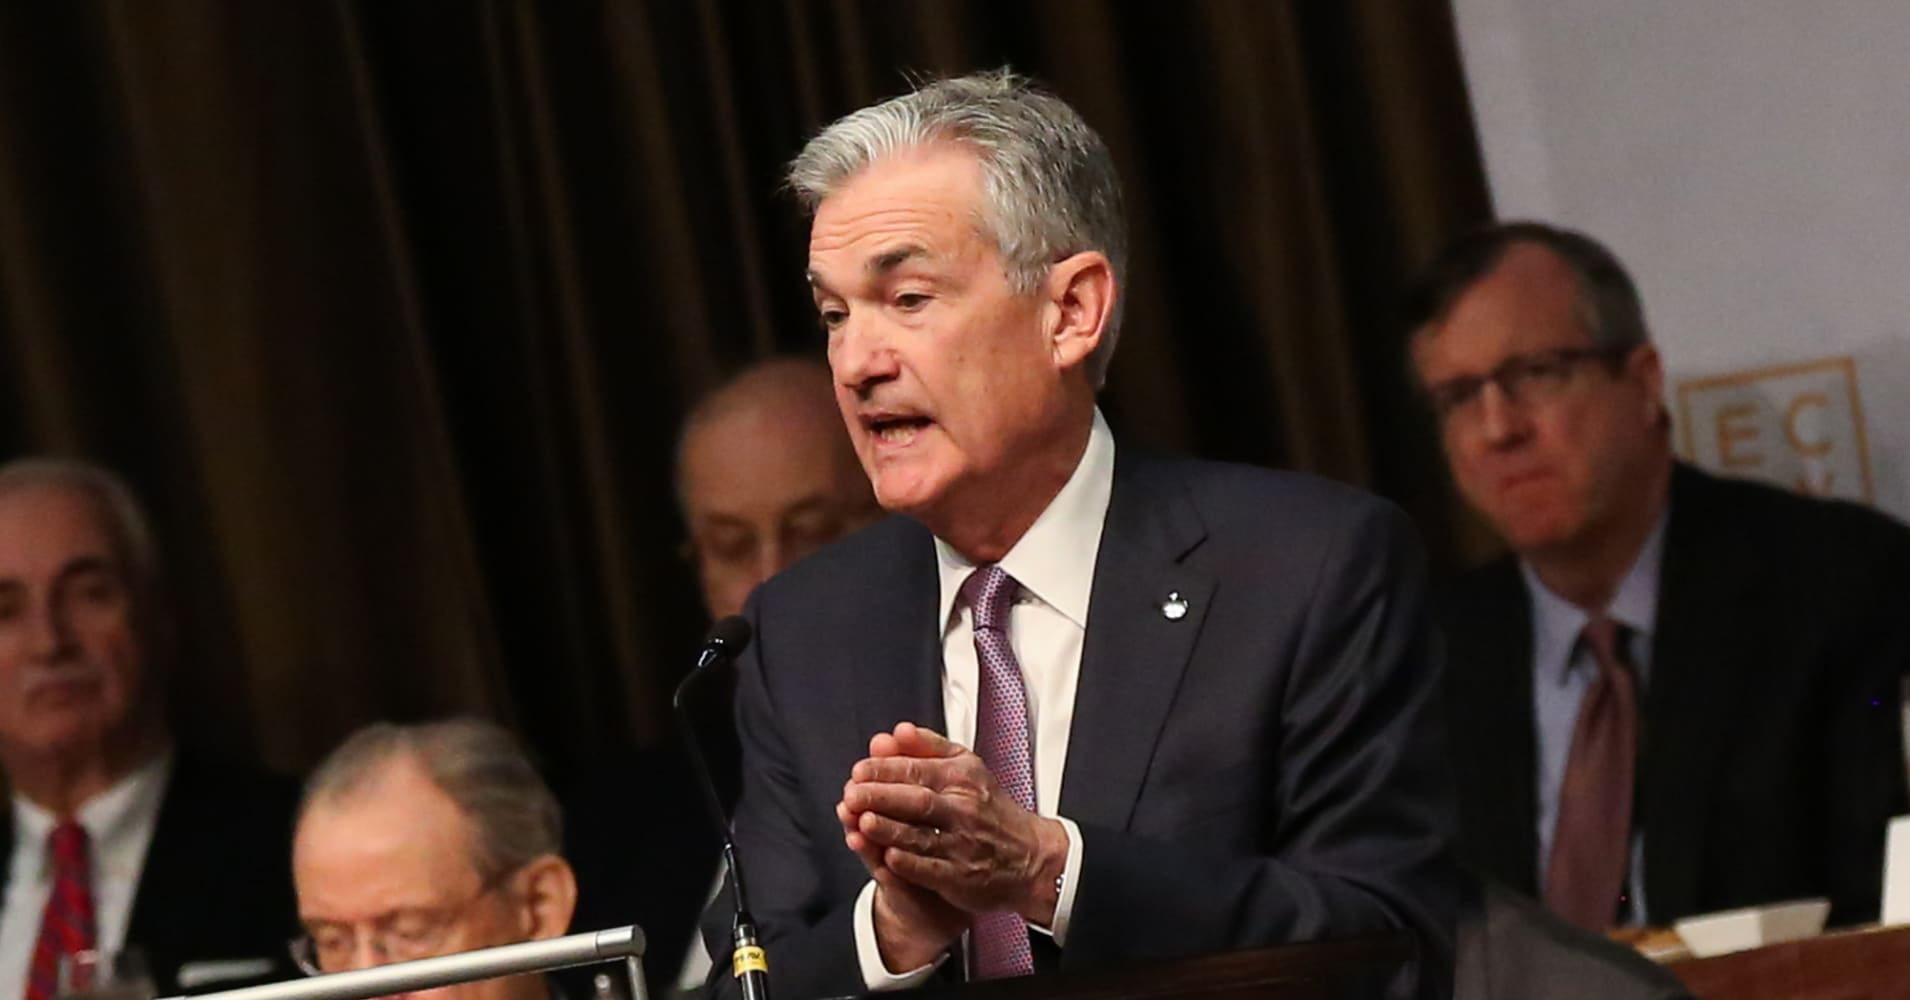 Fed meeting could be pivotal for stock market looking for 'knight in shining armor'